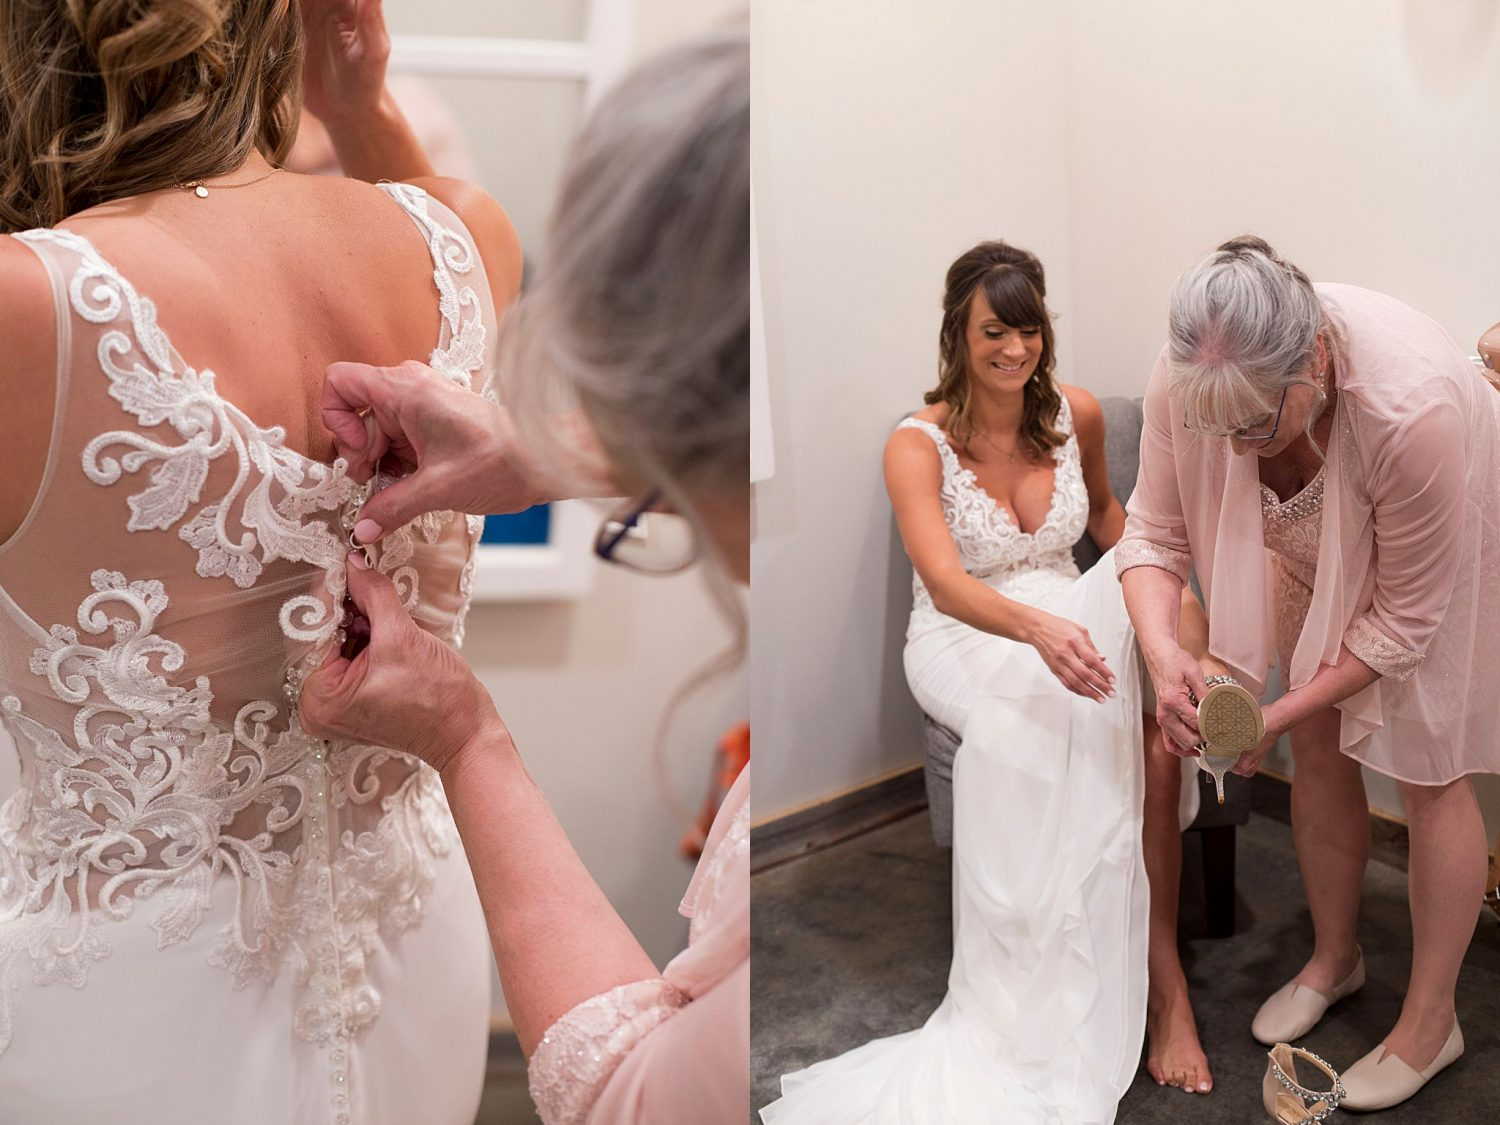 A mother buttons her daughter's wedding gown and assists her with putting on her shoes in the bridal suite of Rapid Creek Cidery